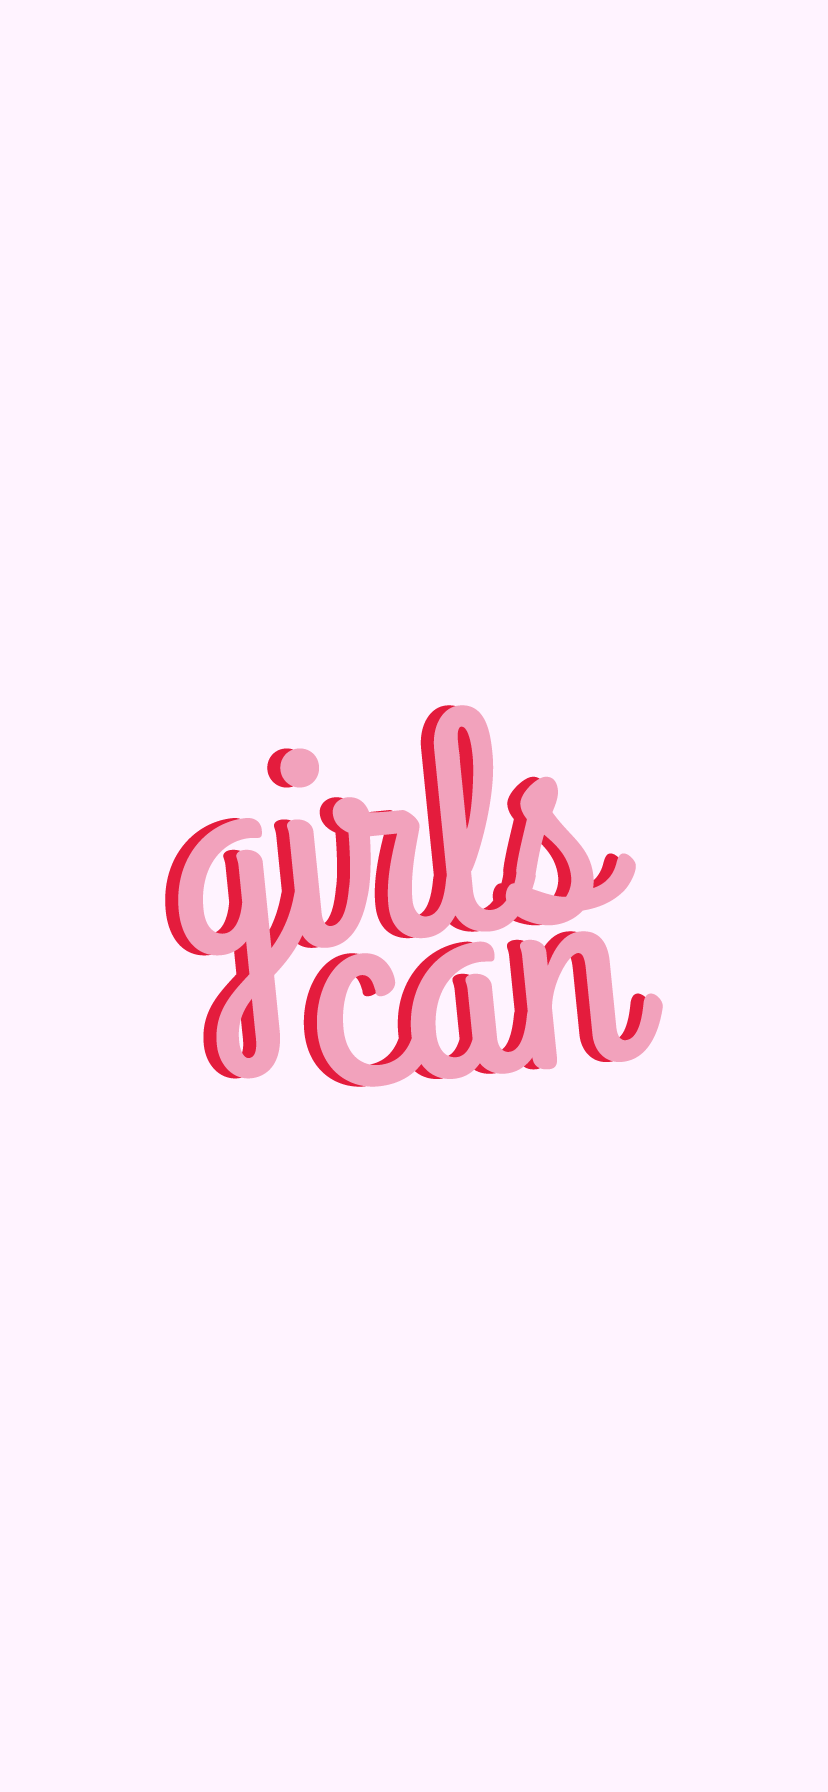 Girls Can   Women Courage Quote White Version Sticker by Isabelle 828x1792